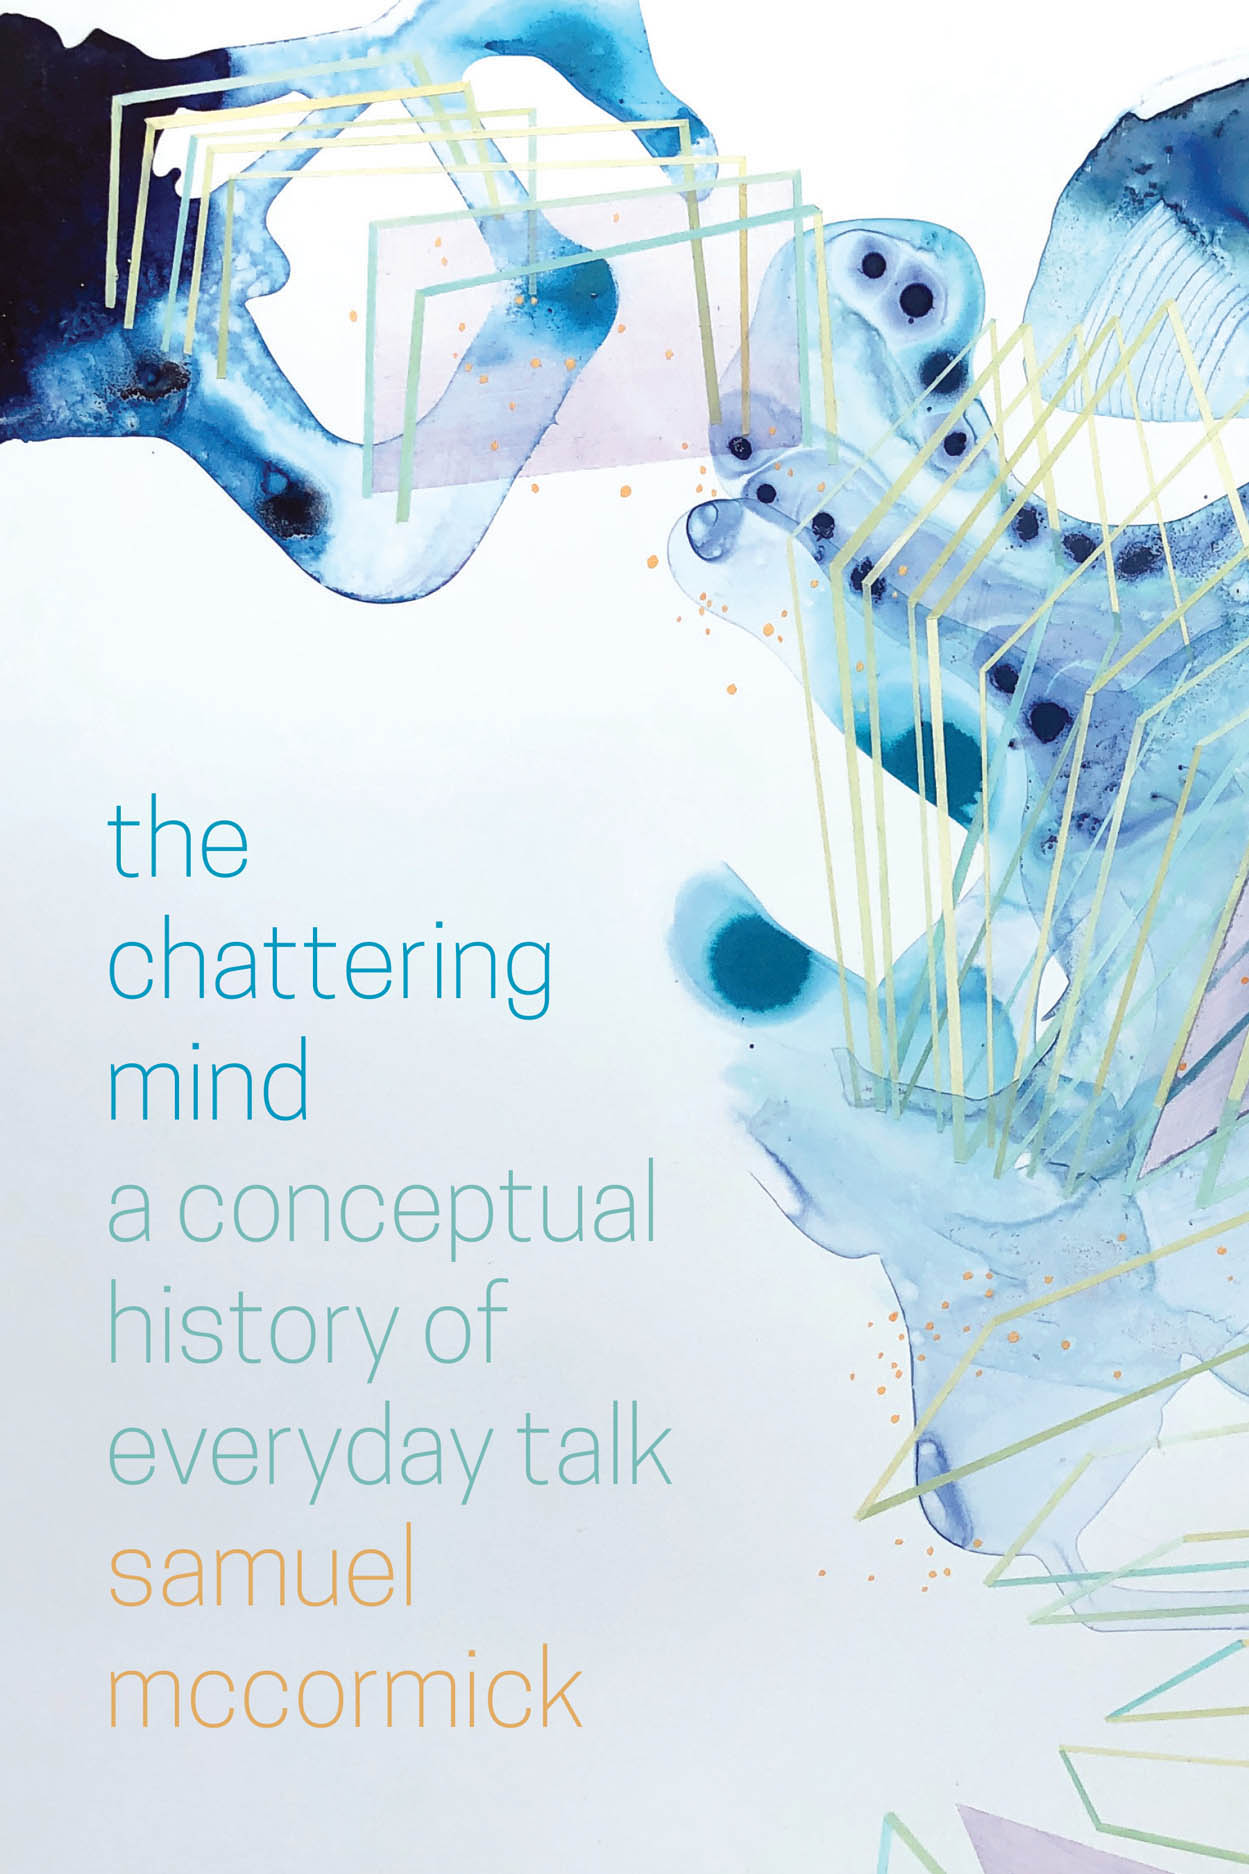 The Chattering Mind: A Conceptual History of Everyday Talk